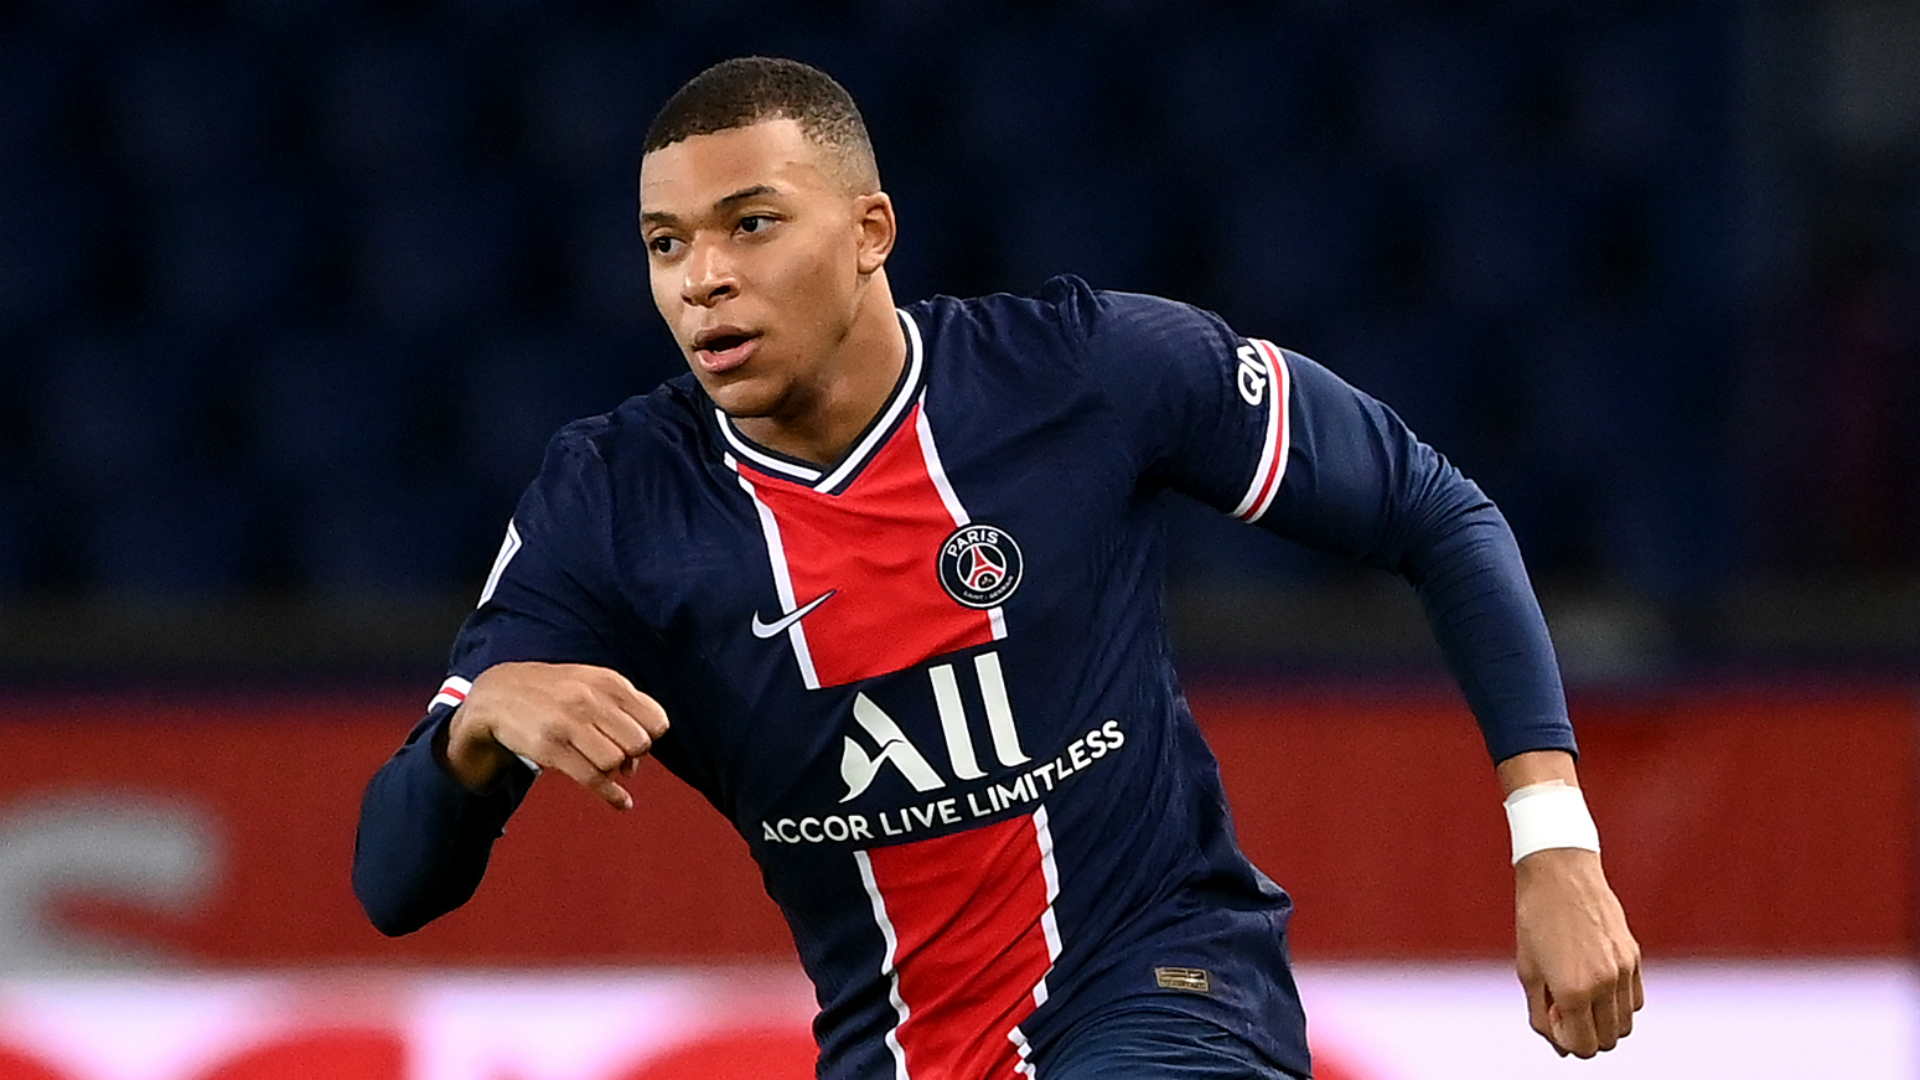 PSG will aim to close the deficit on log-leaders Lille